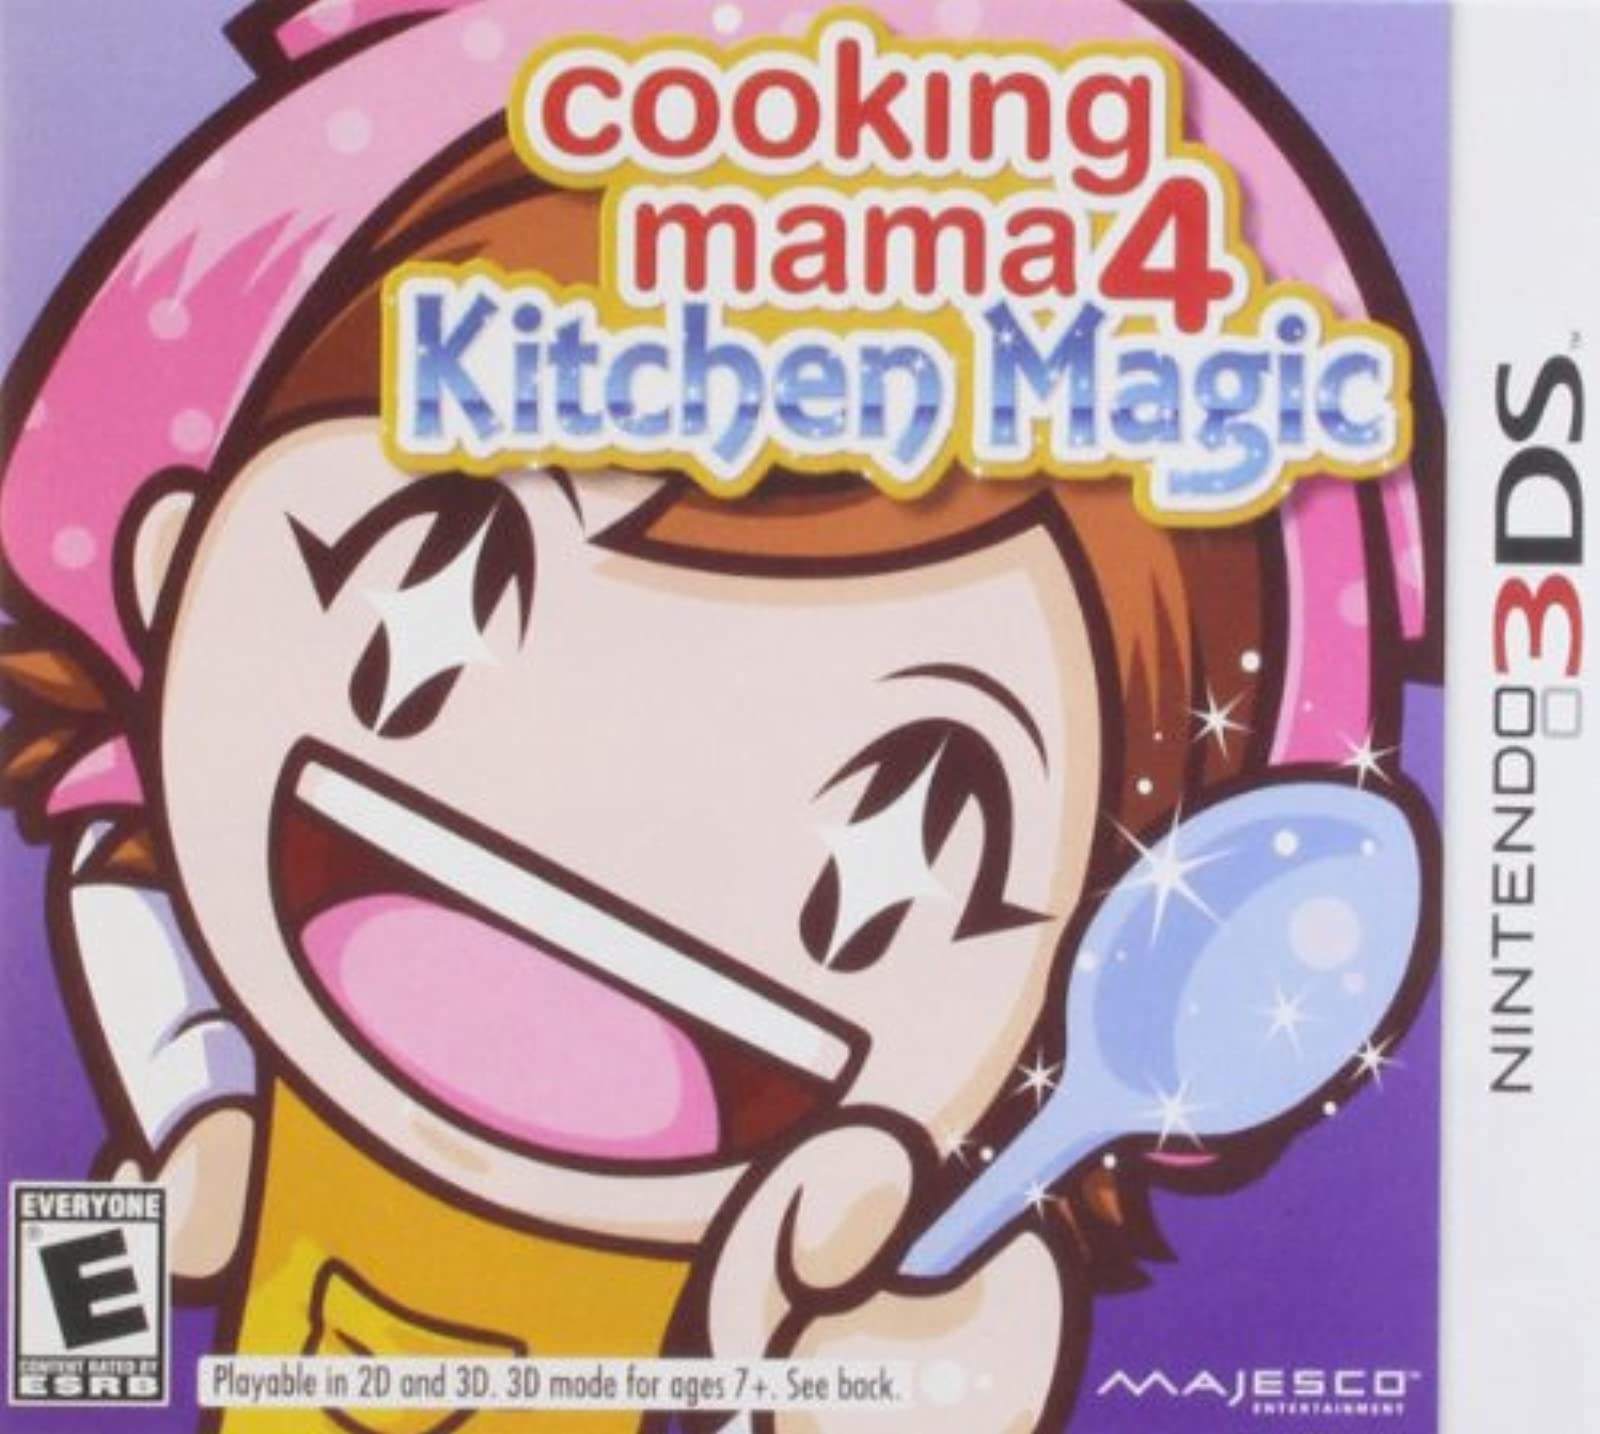 Cooking Mama 4: Kitchen Magic Nintendo For 3DS RPG